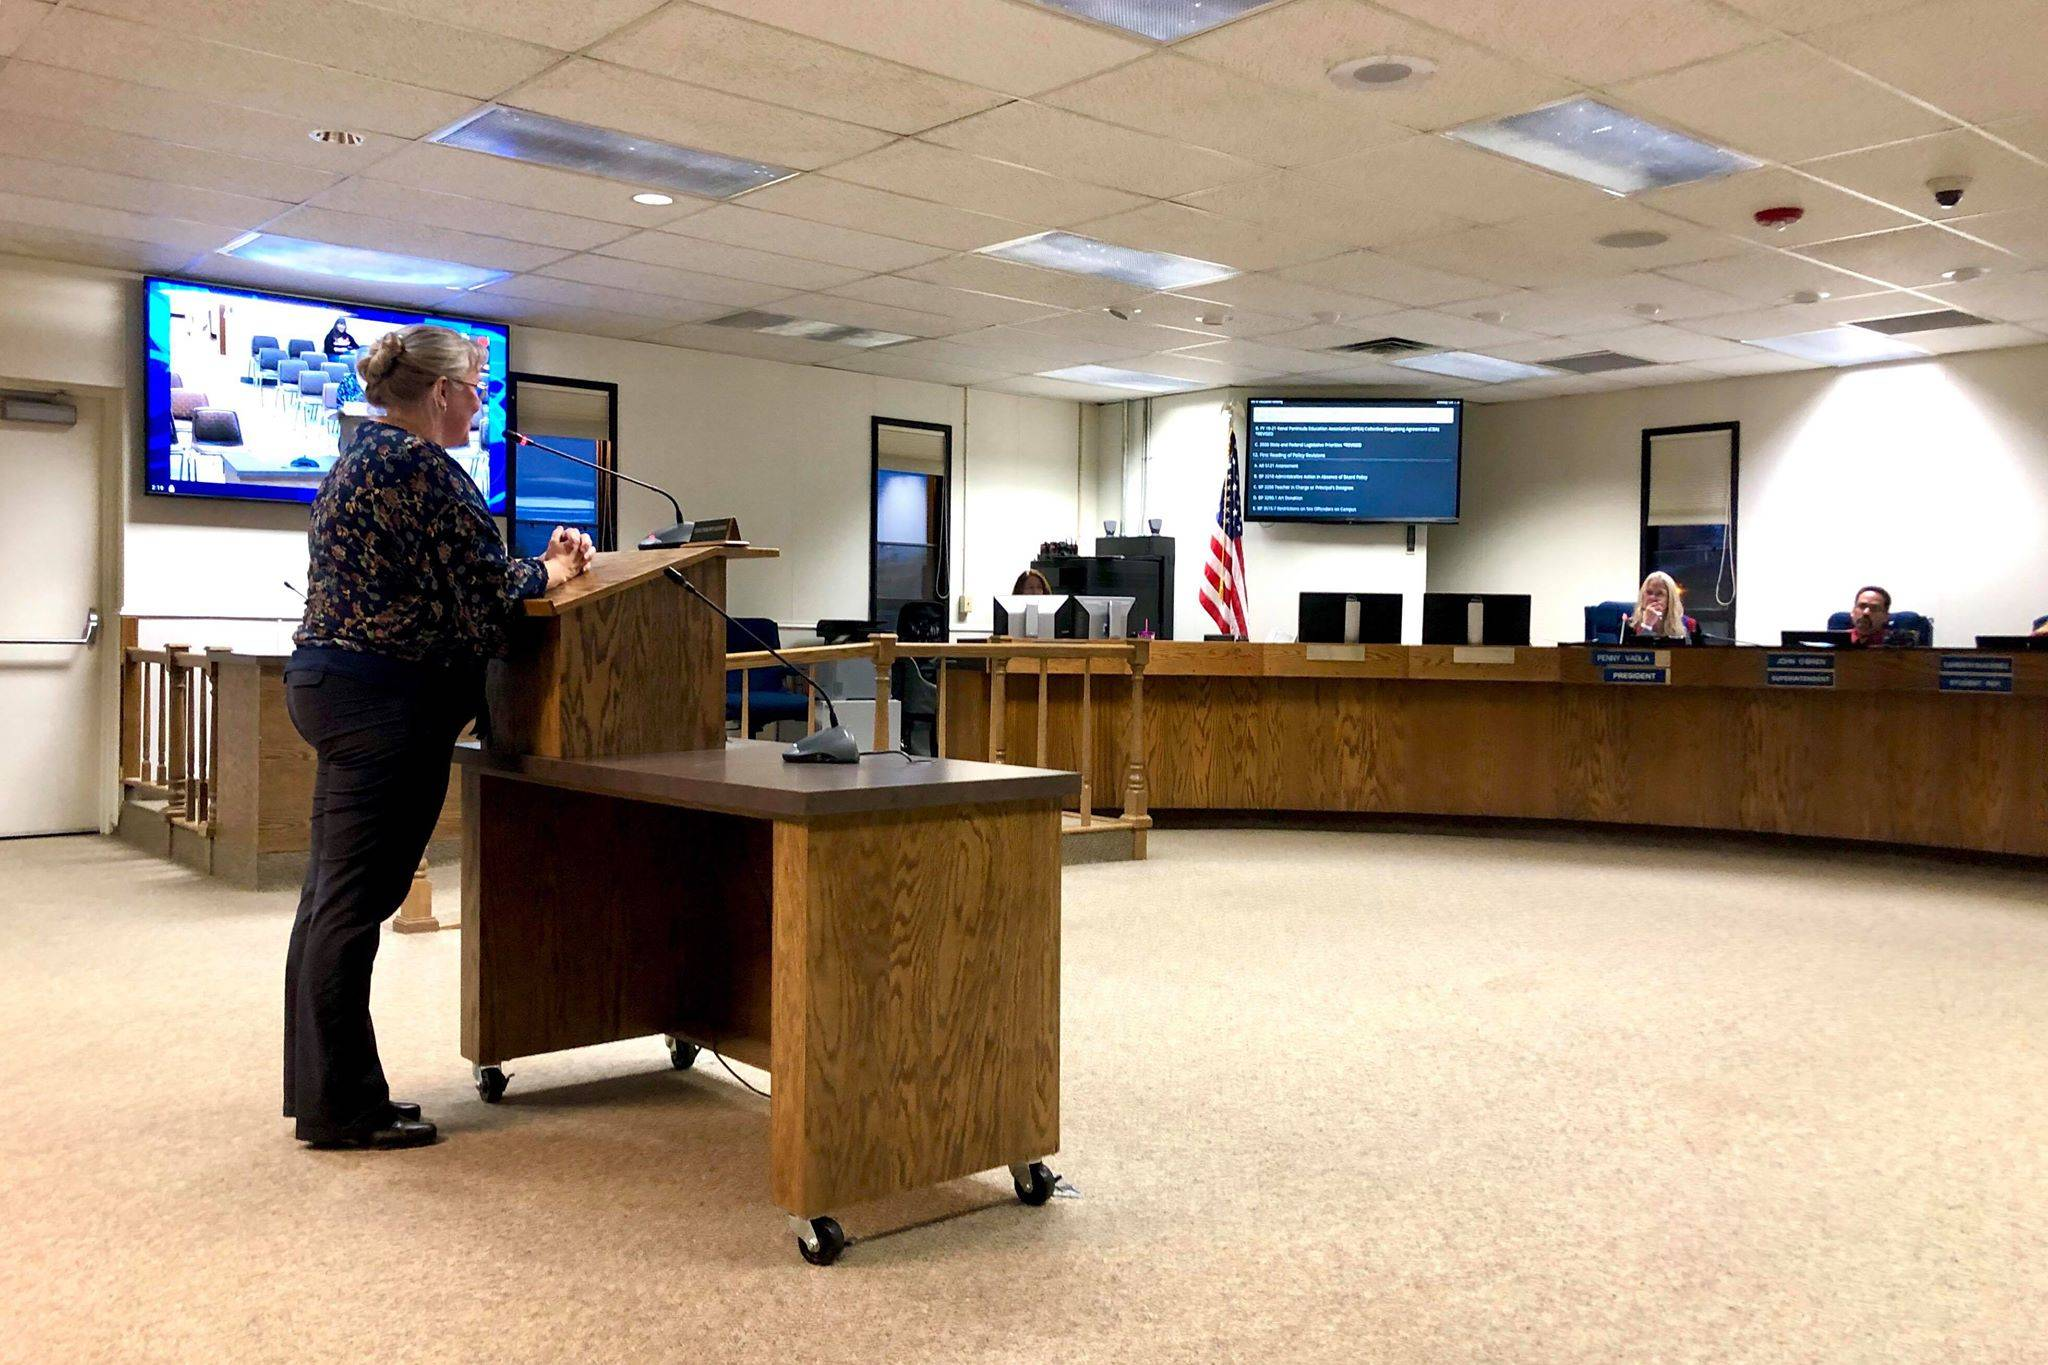 Kenai Peninsula Education Support Association Anne McCabe speaks to the Kenai Peninsula Borough School District Board of Education in support of approving employee contracts negotiated last month, Monday, Oct. 7, 2019, in Soldotna, Alaska. (Photo by Victoria Petersen/Peninsula Clarion)